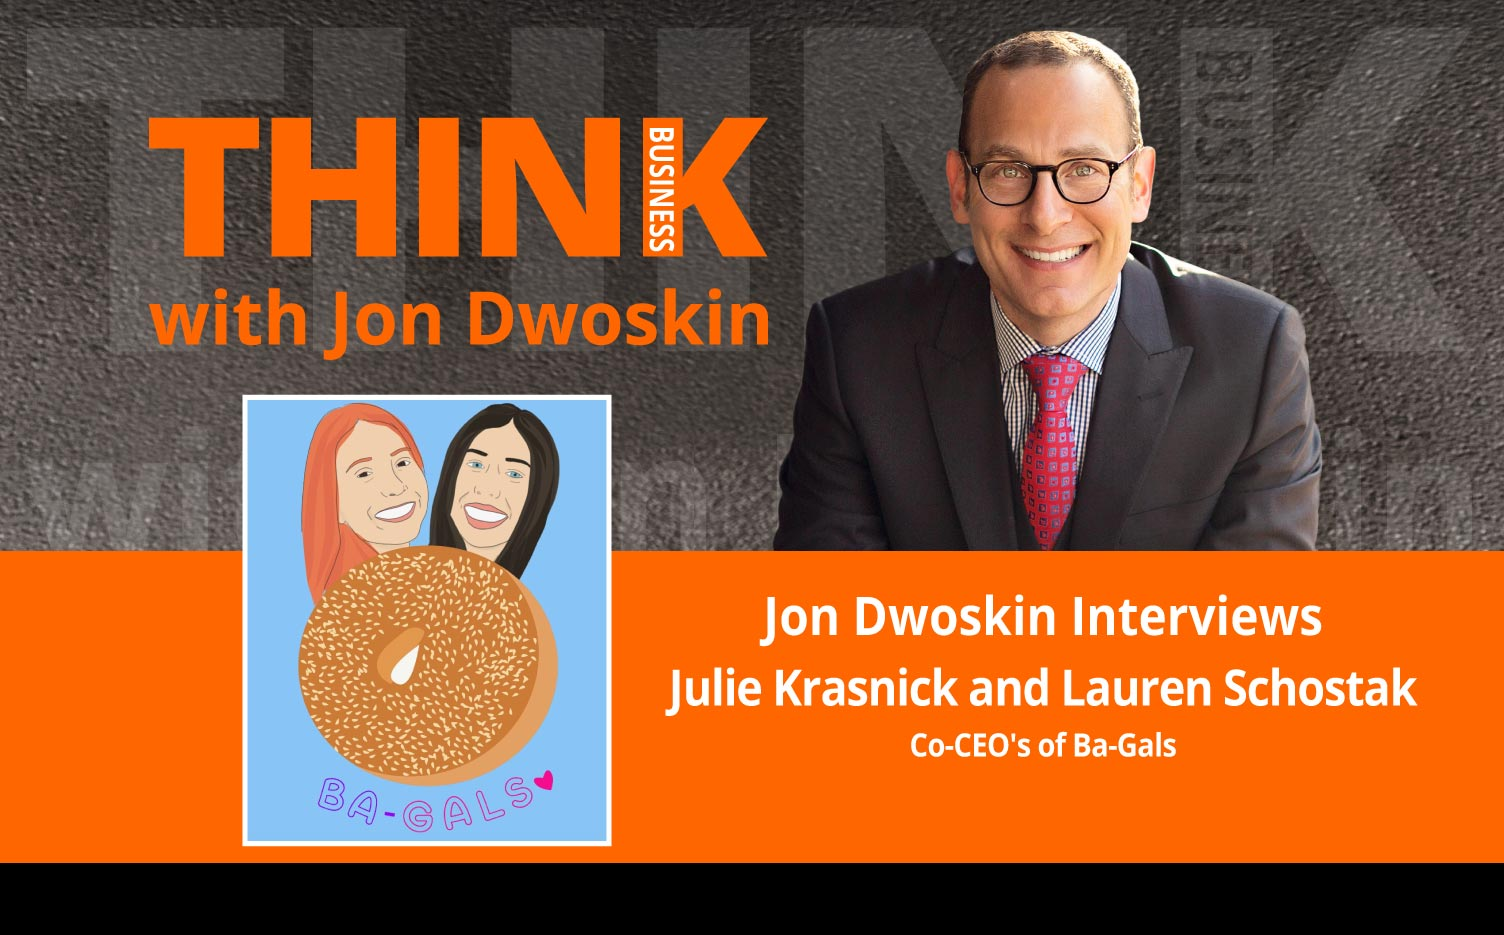 THINK Business Podcast: Jon Dwoskin Interviews Howard Behar